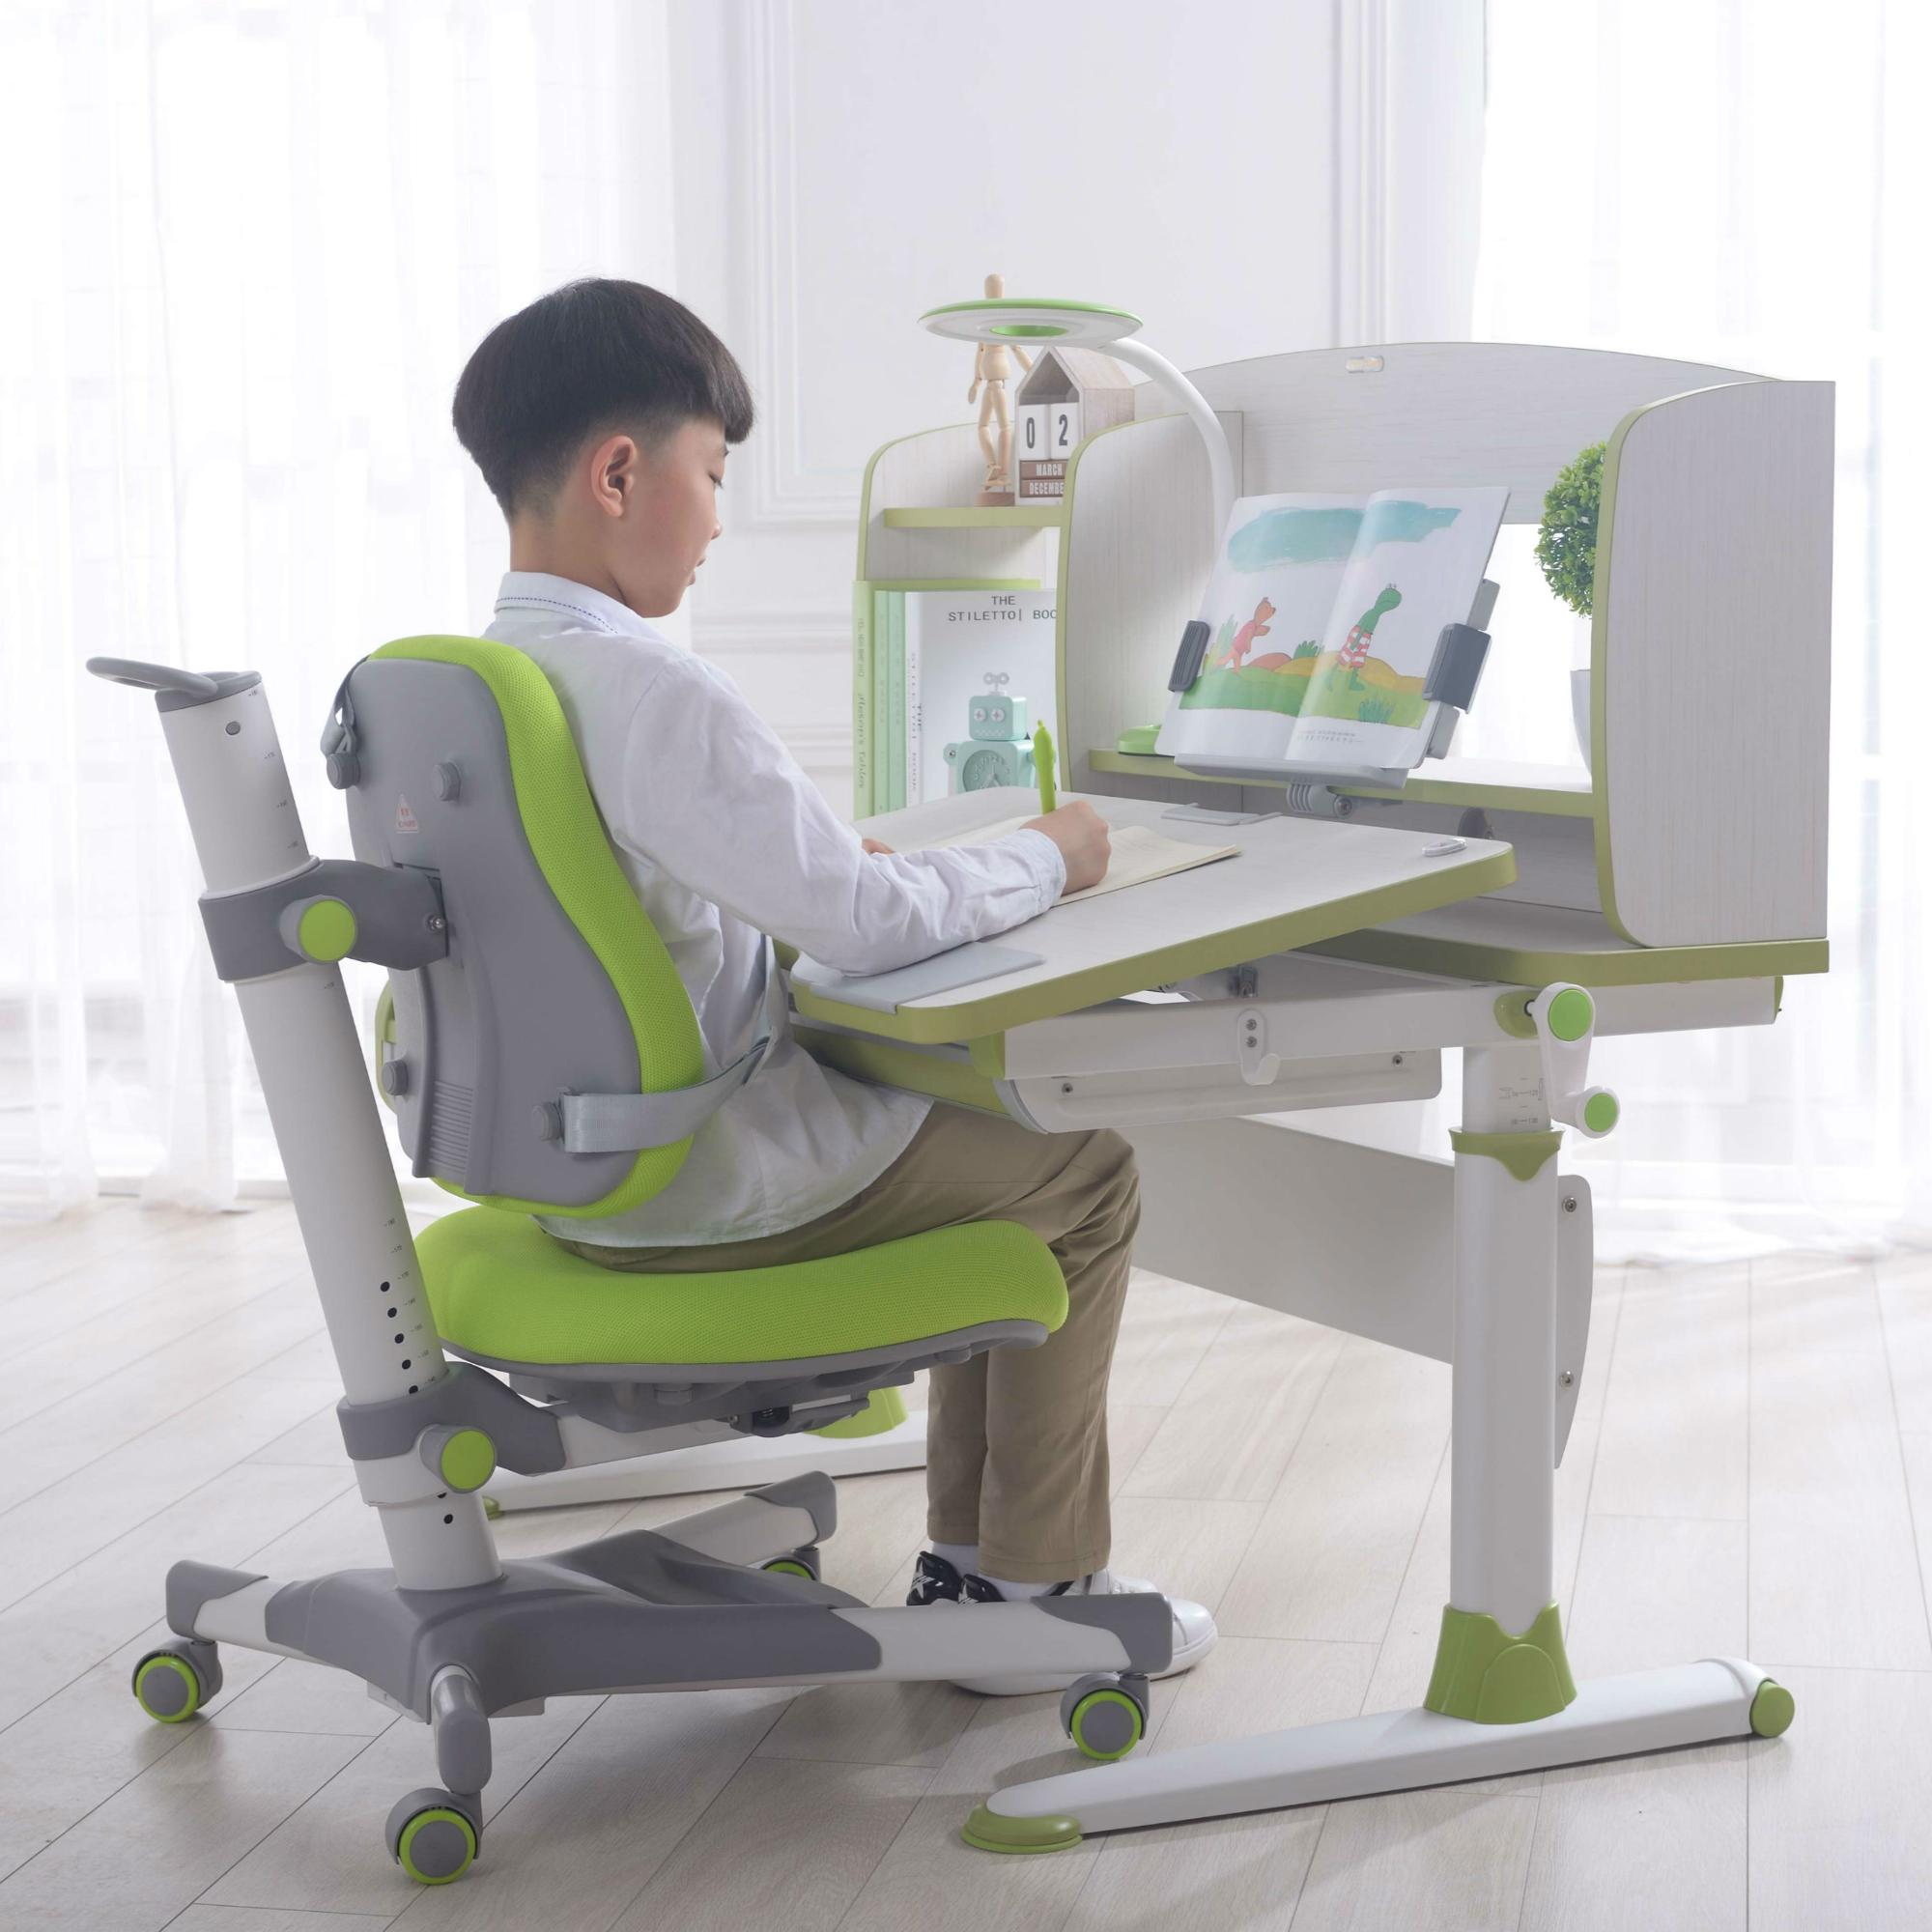 Ergonomic Height Adjustable Study Desk